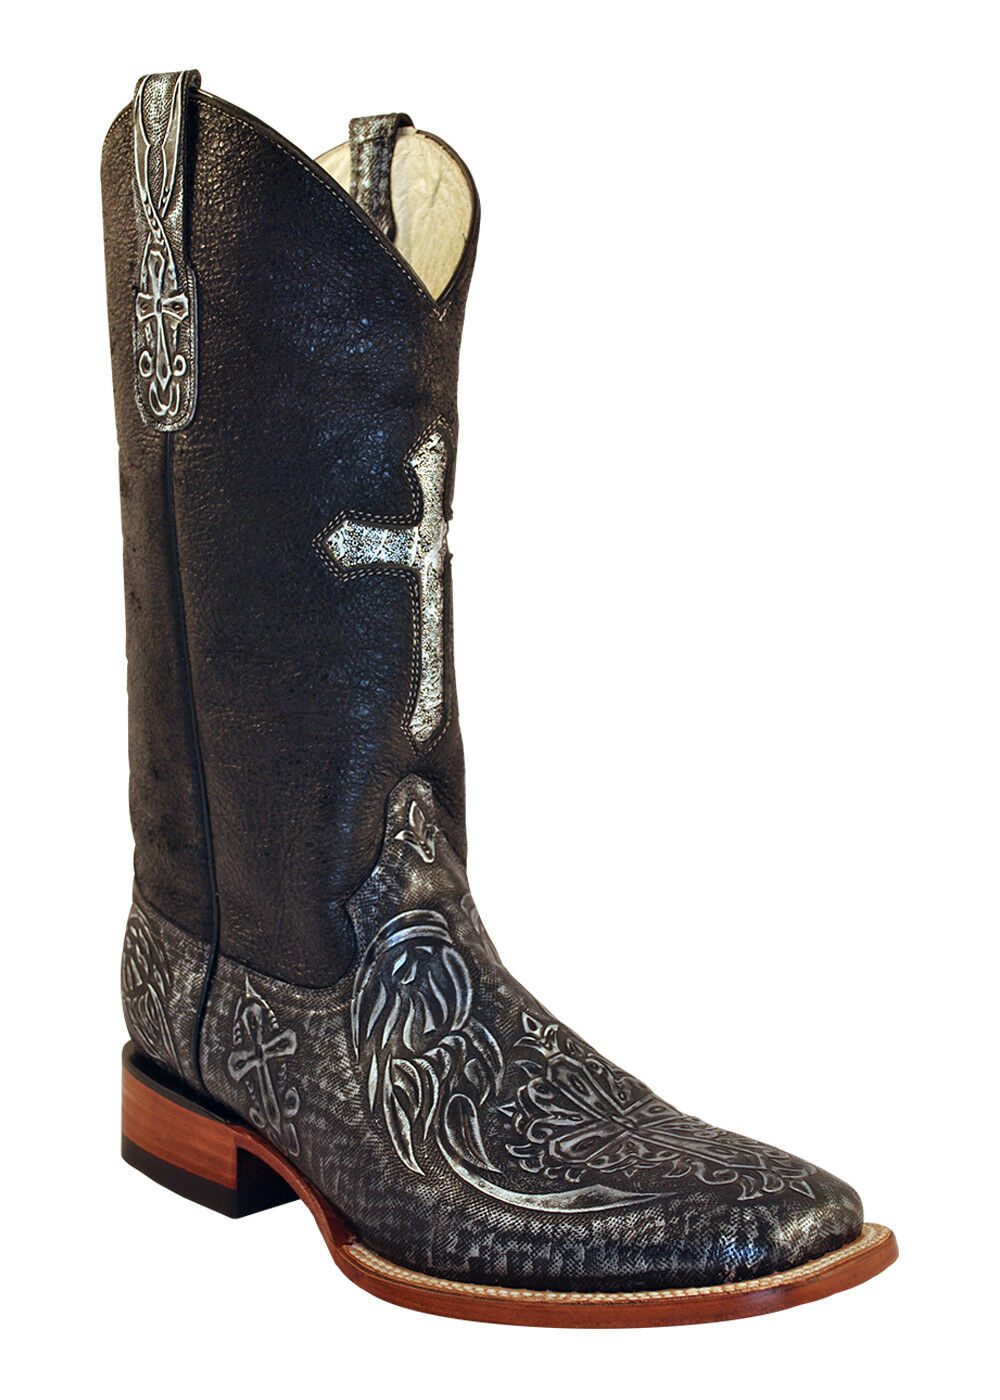 New Ferrini Women Leather Cowboy Western Western Western Embossed Cross Boot Black Sq Toe 10 34e86f